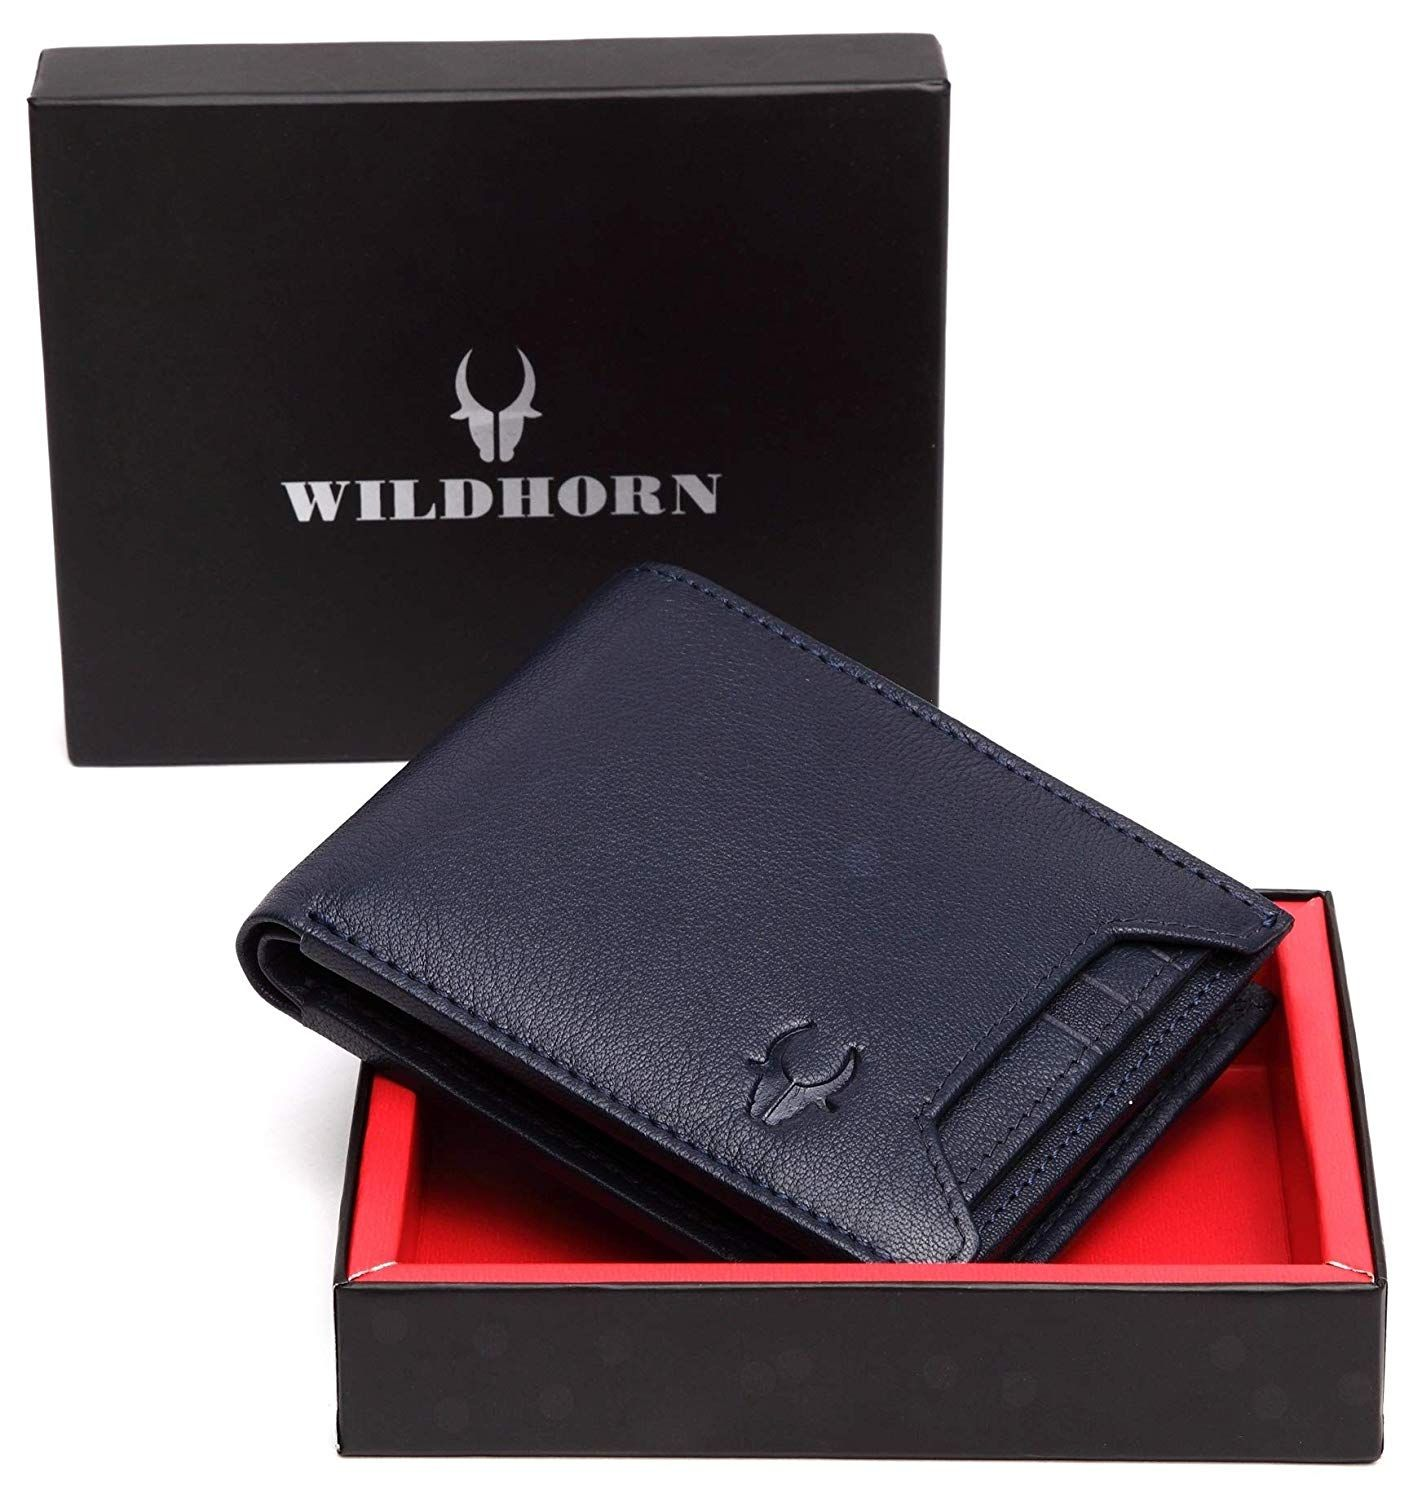 WildHorn RFID Protected Genuine High Quality Leather Wallet for Men